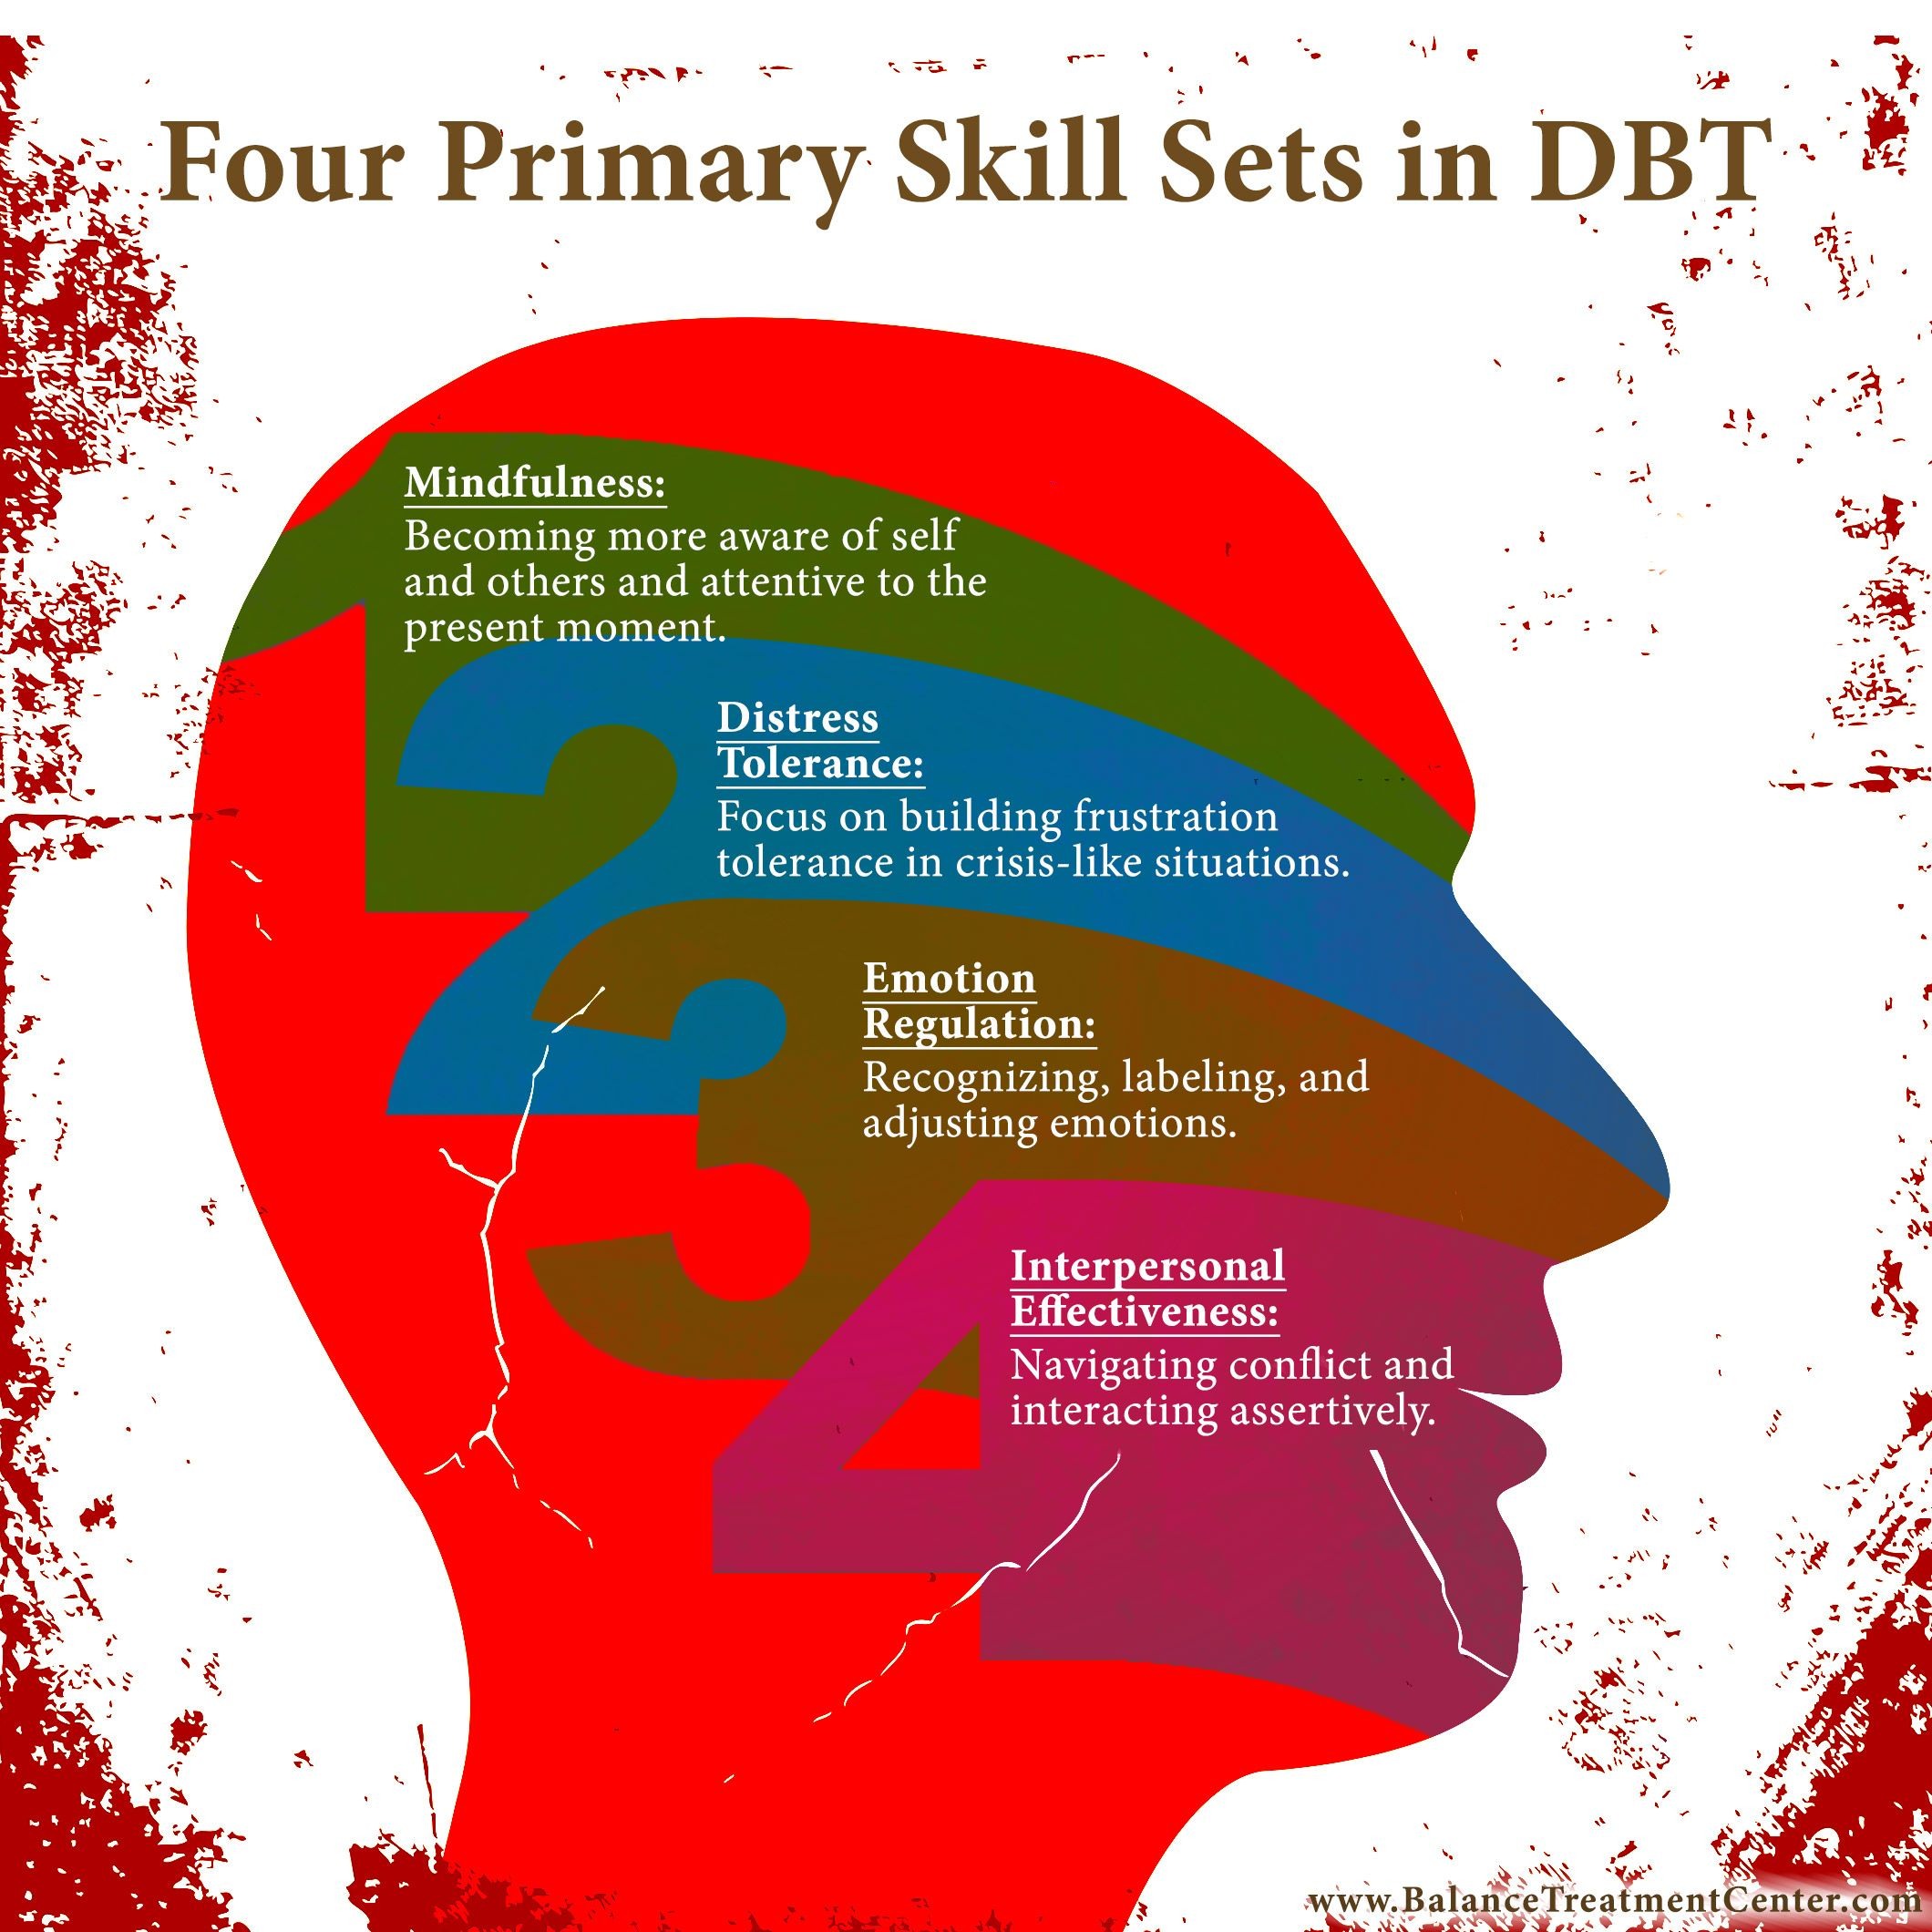 Dialectical Behavior Therapy Dbt Is A Broad Based Cognitive Behavioral Treatment Model That